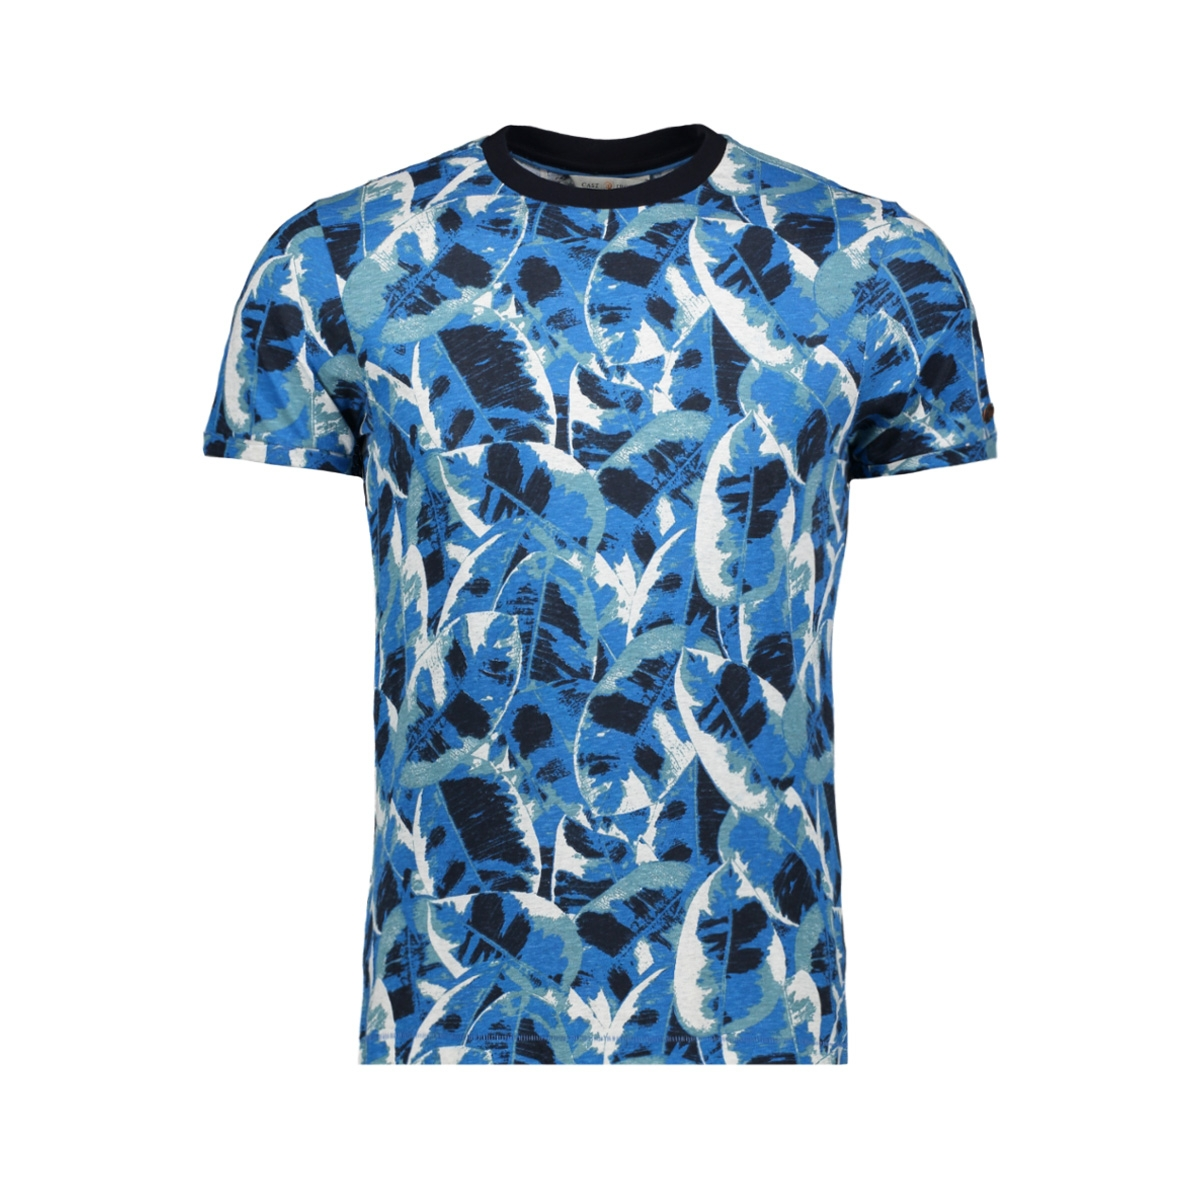 leaf camoufage t shirt ctss193307 cast iron t-shirt 5307